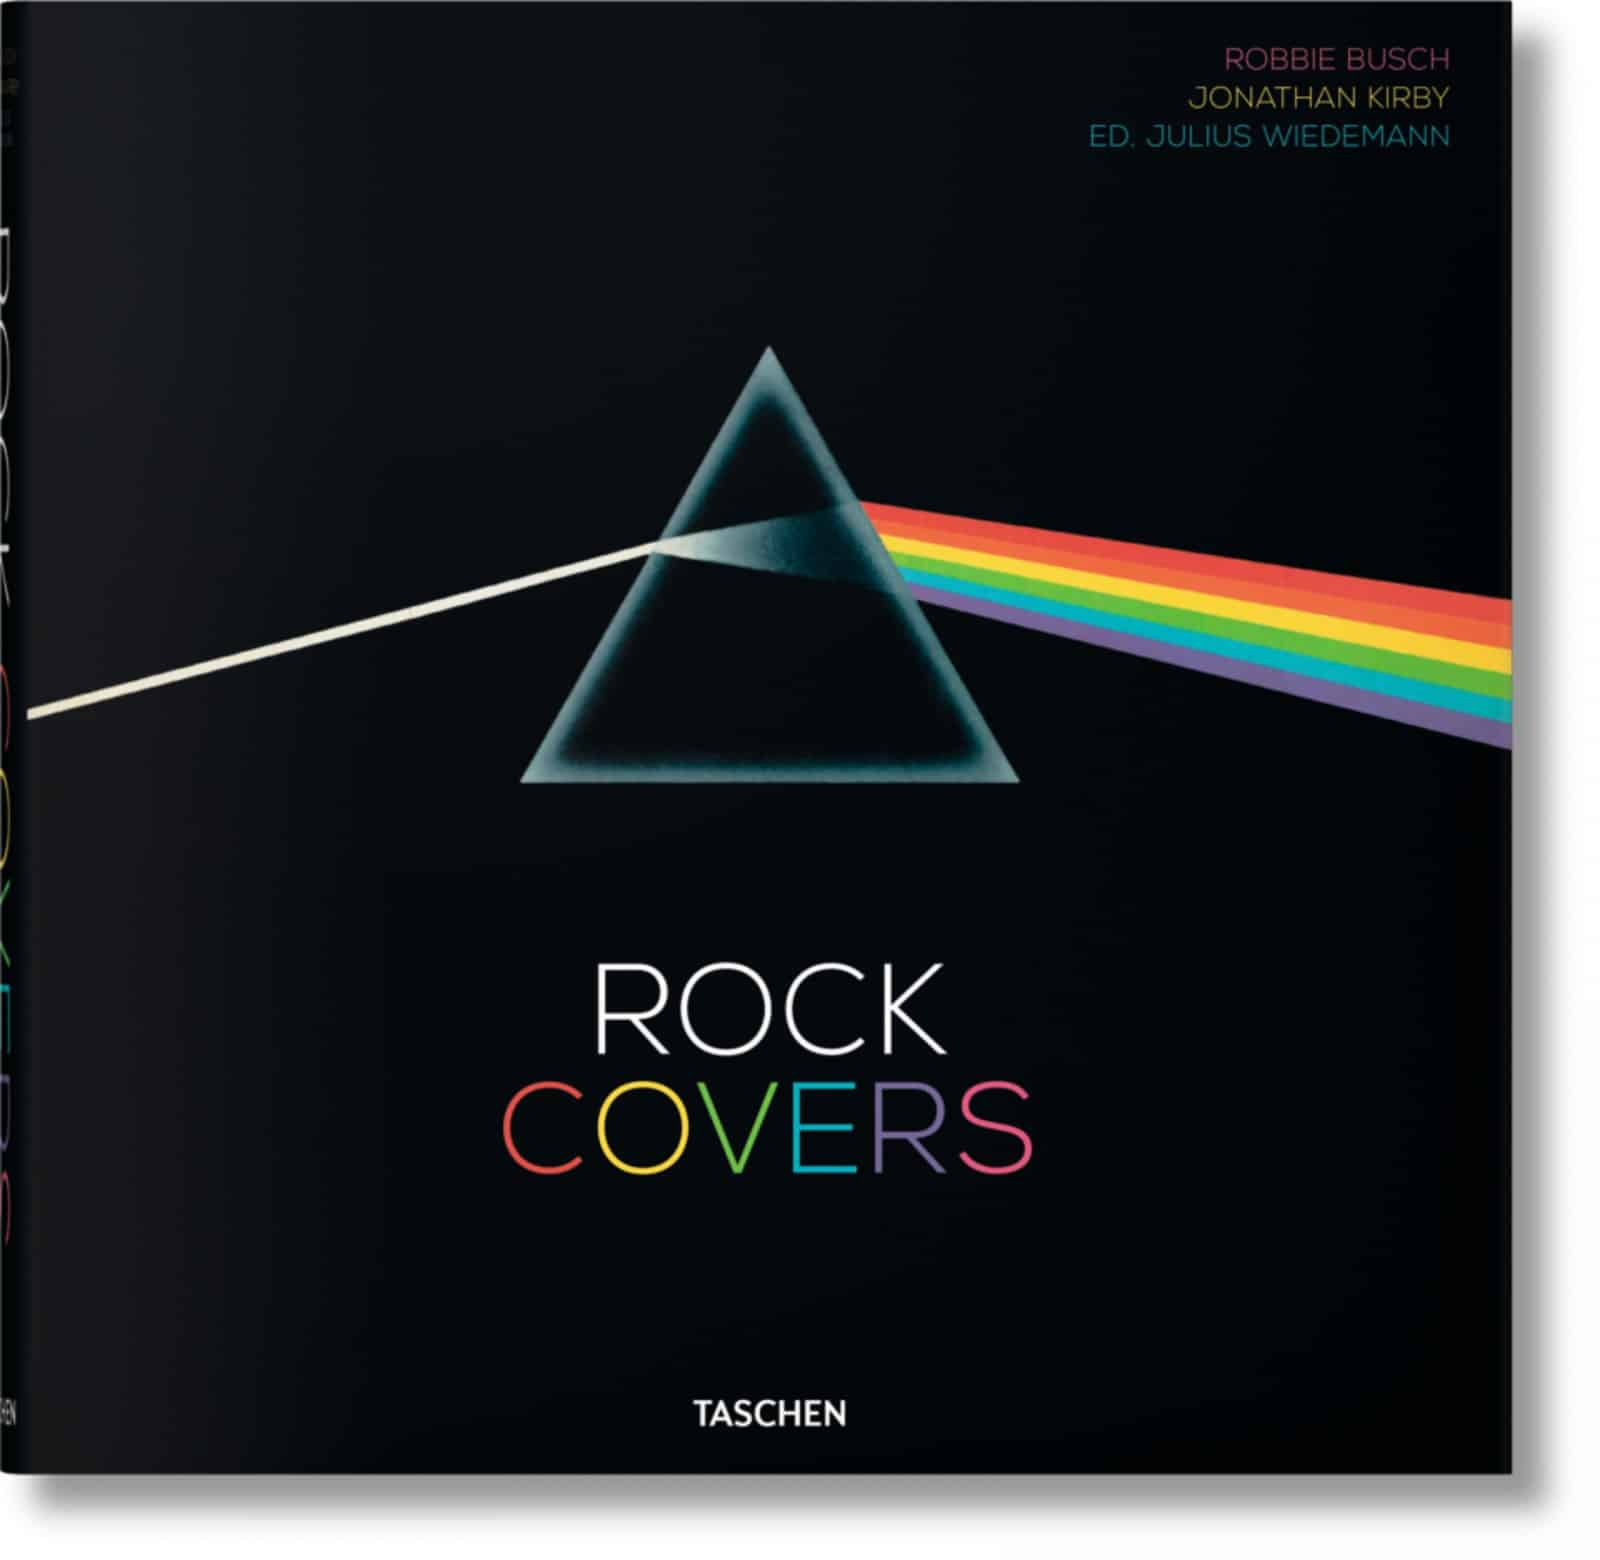 Rock covers by TASCHEN